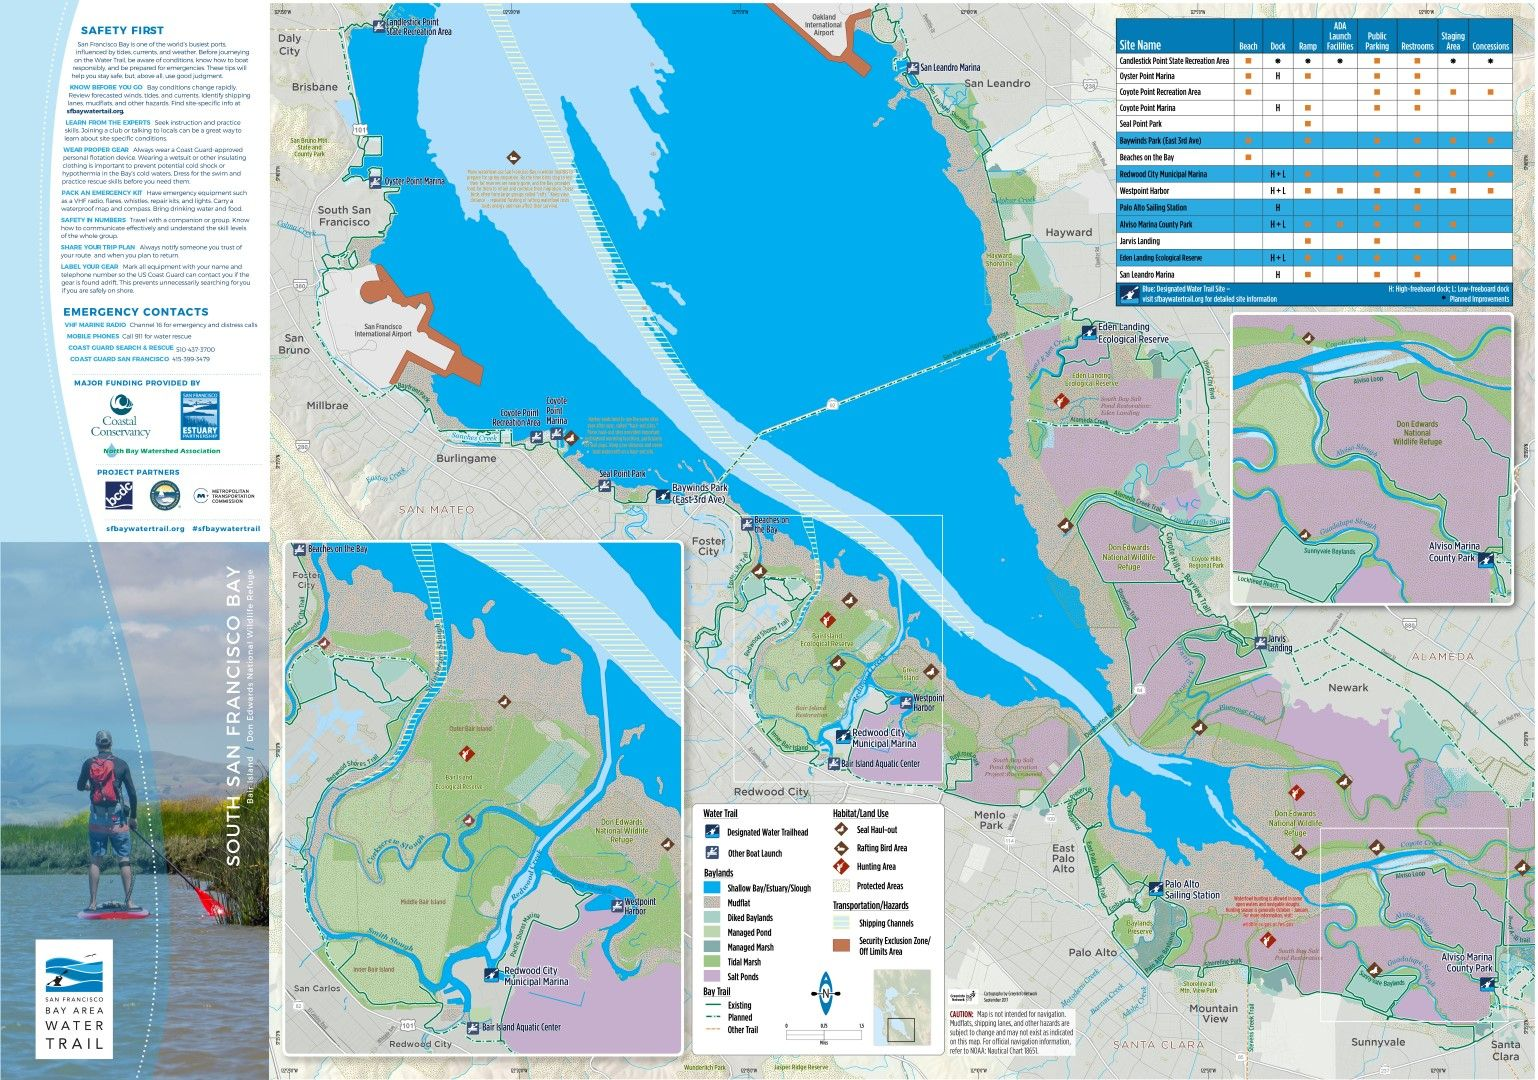 Pdf Maps Bay Water Trail With Images Plan Your Trip San Pablo Bay Suisun City